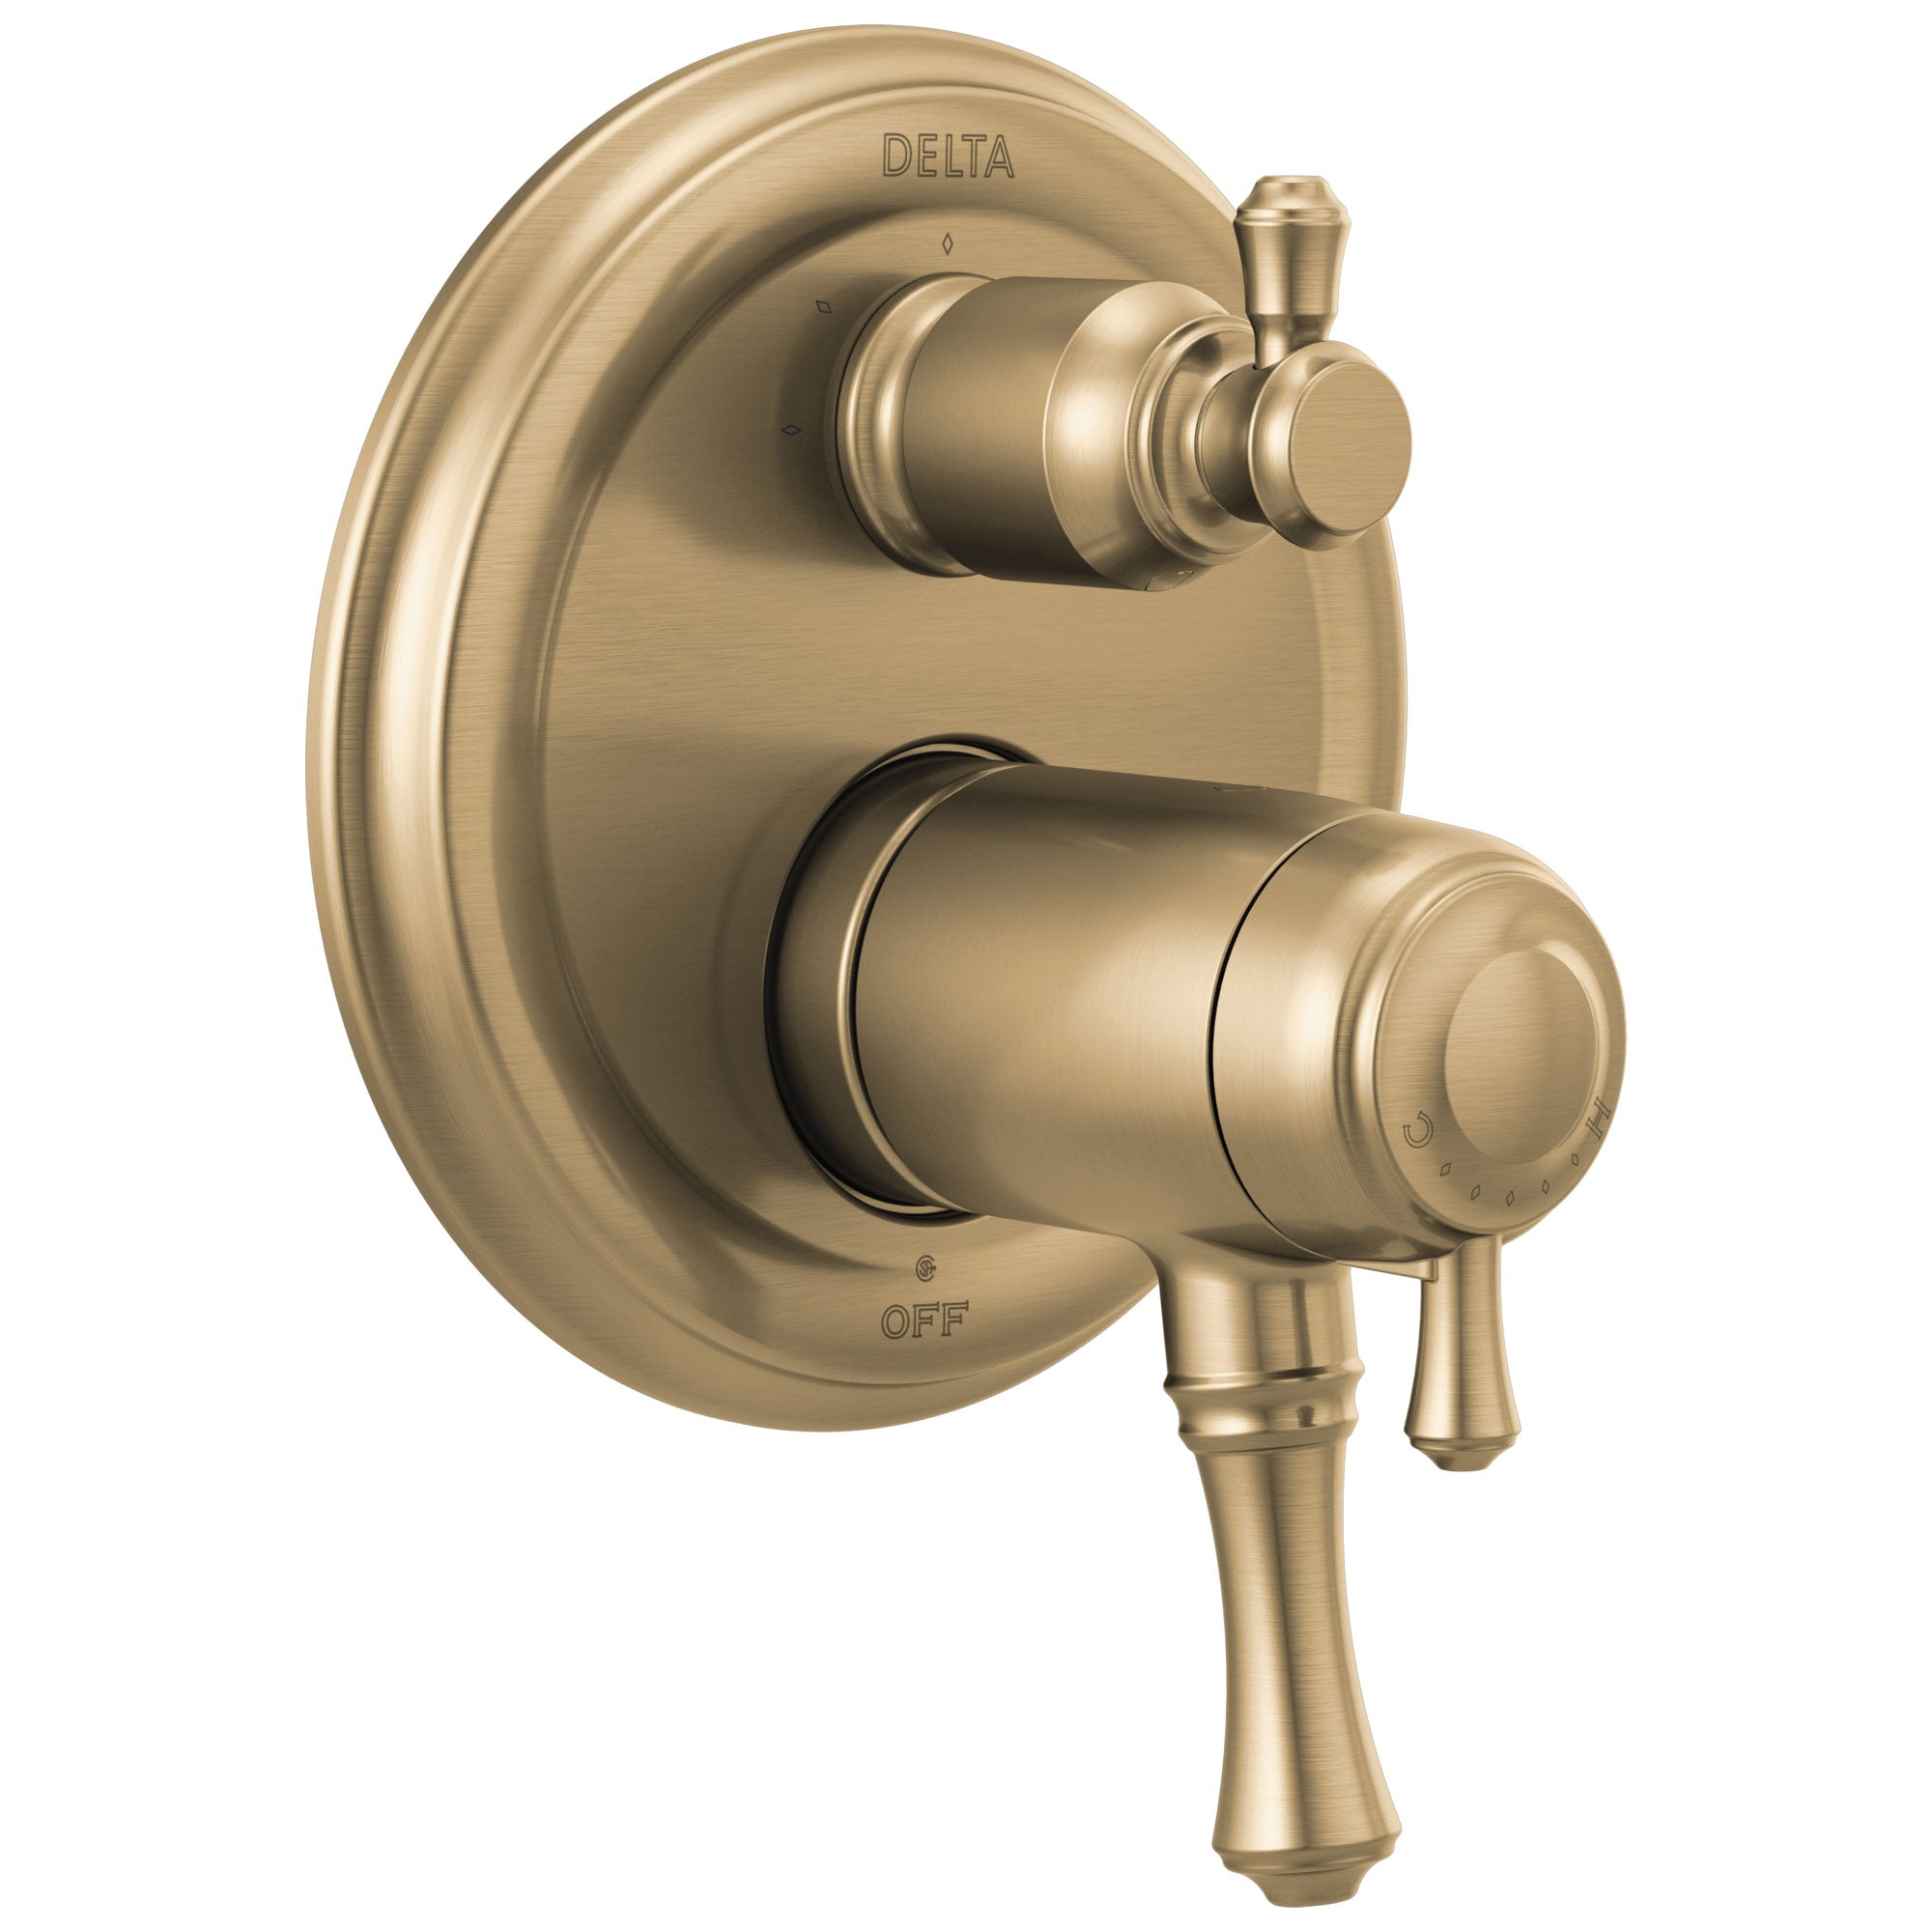 Delta Cassidy Champagne Bronze Finish Traditional TempAssure 17T Series Shower Control Trim Kit with 3-Setting Integrated Diverter (Requires Valve) DT27T897CZ